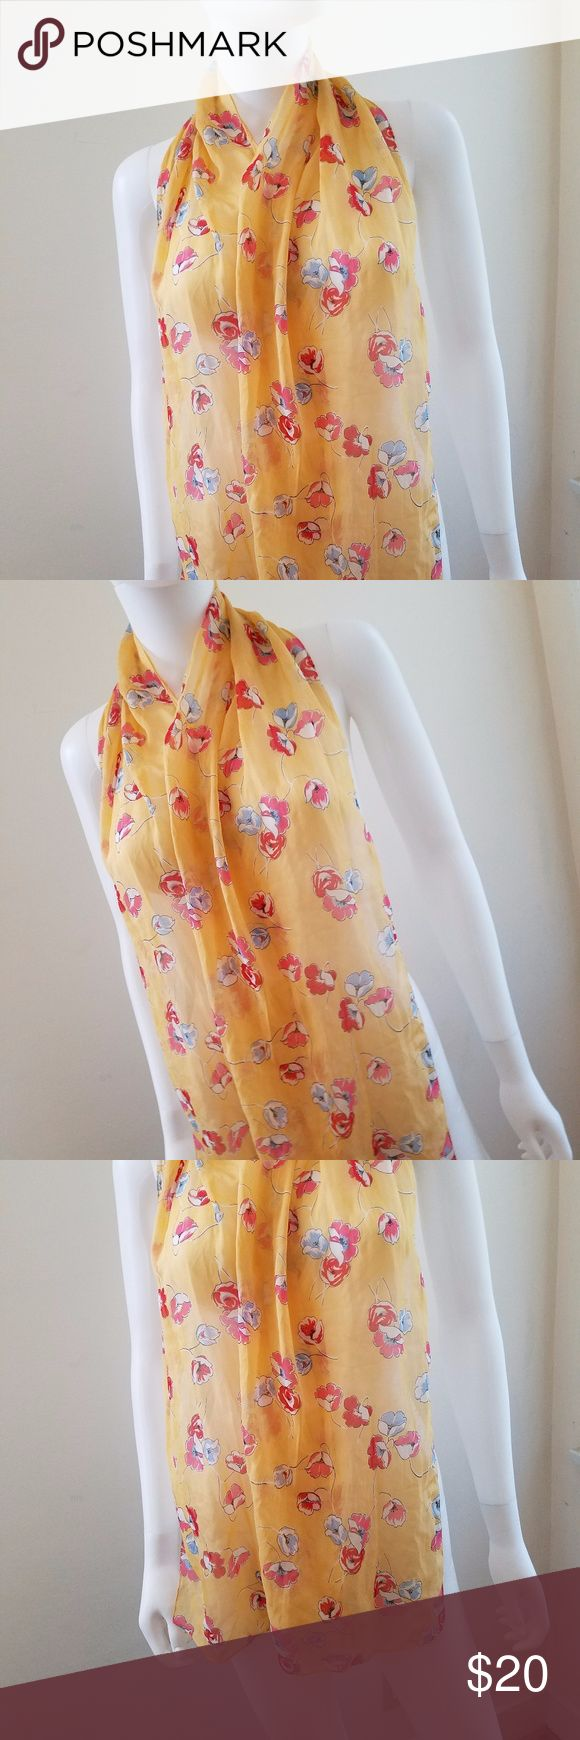 "Women's Yellow Multi color Floral long Scarf Versatile Scarf with pretty flower print. Style this scarf any way you like for a fashionista style.  100% polyester. About 62"" long and 13"" wide. Accessories Scarves & Wraps"